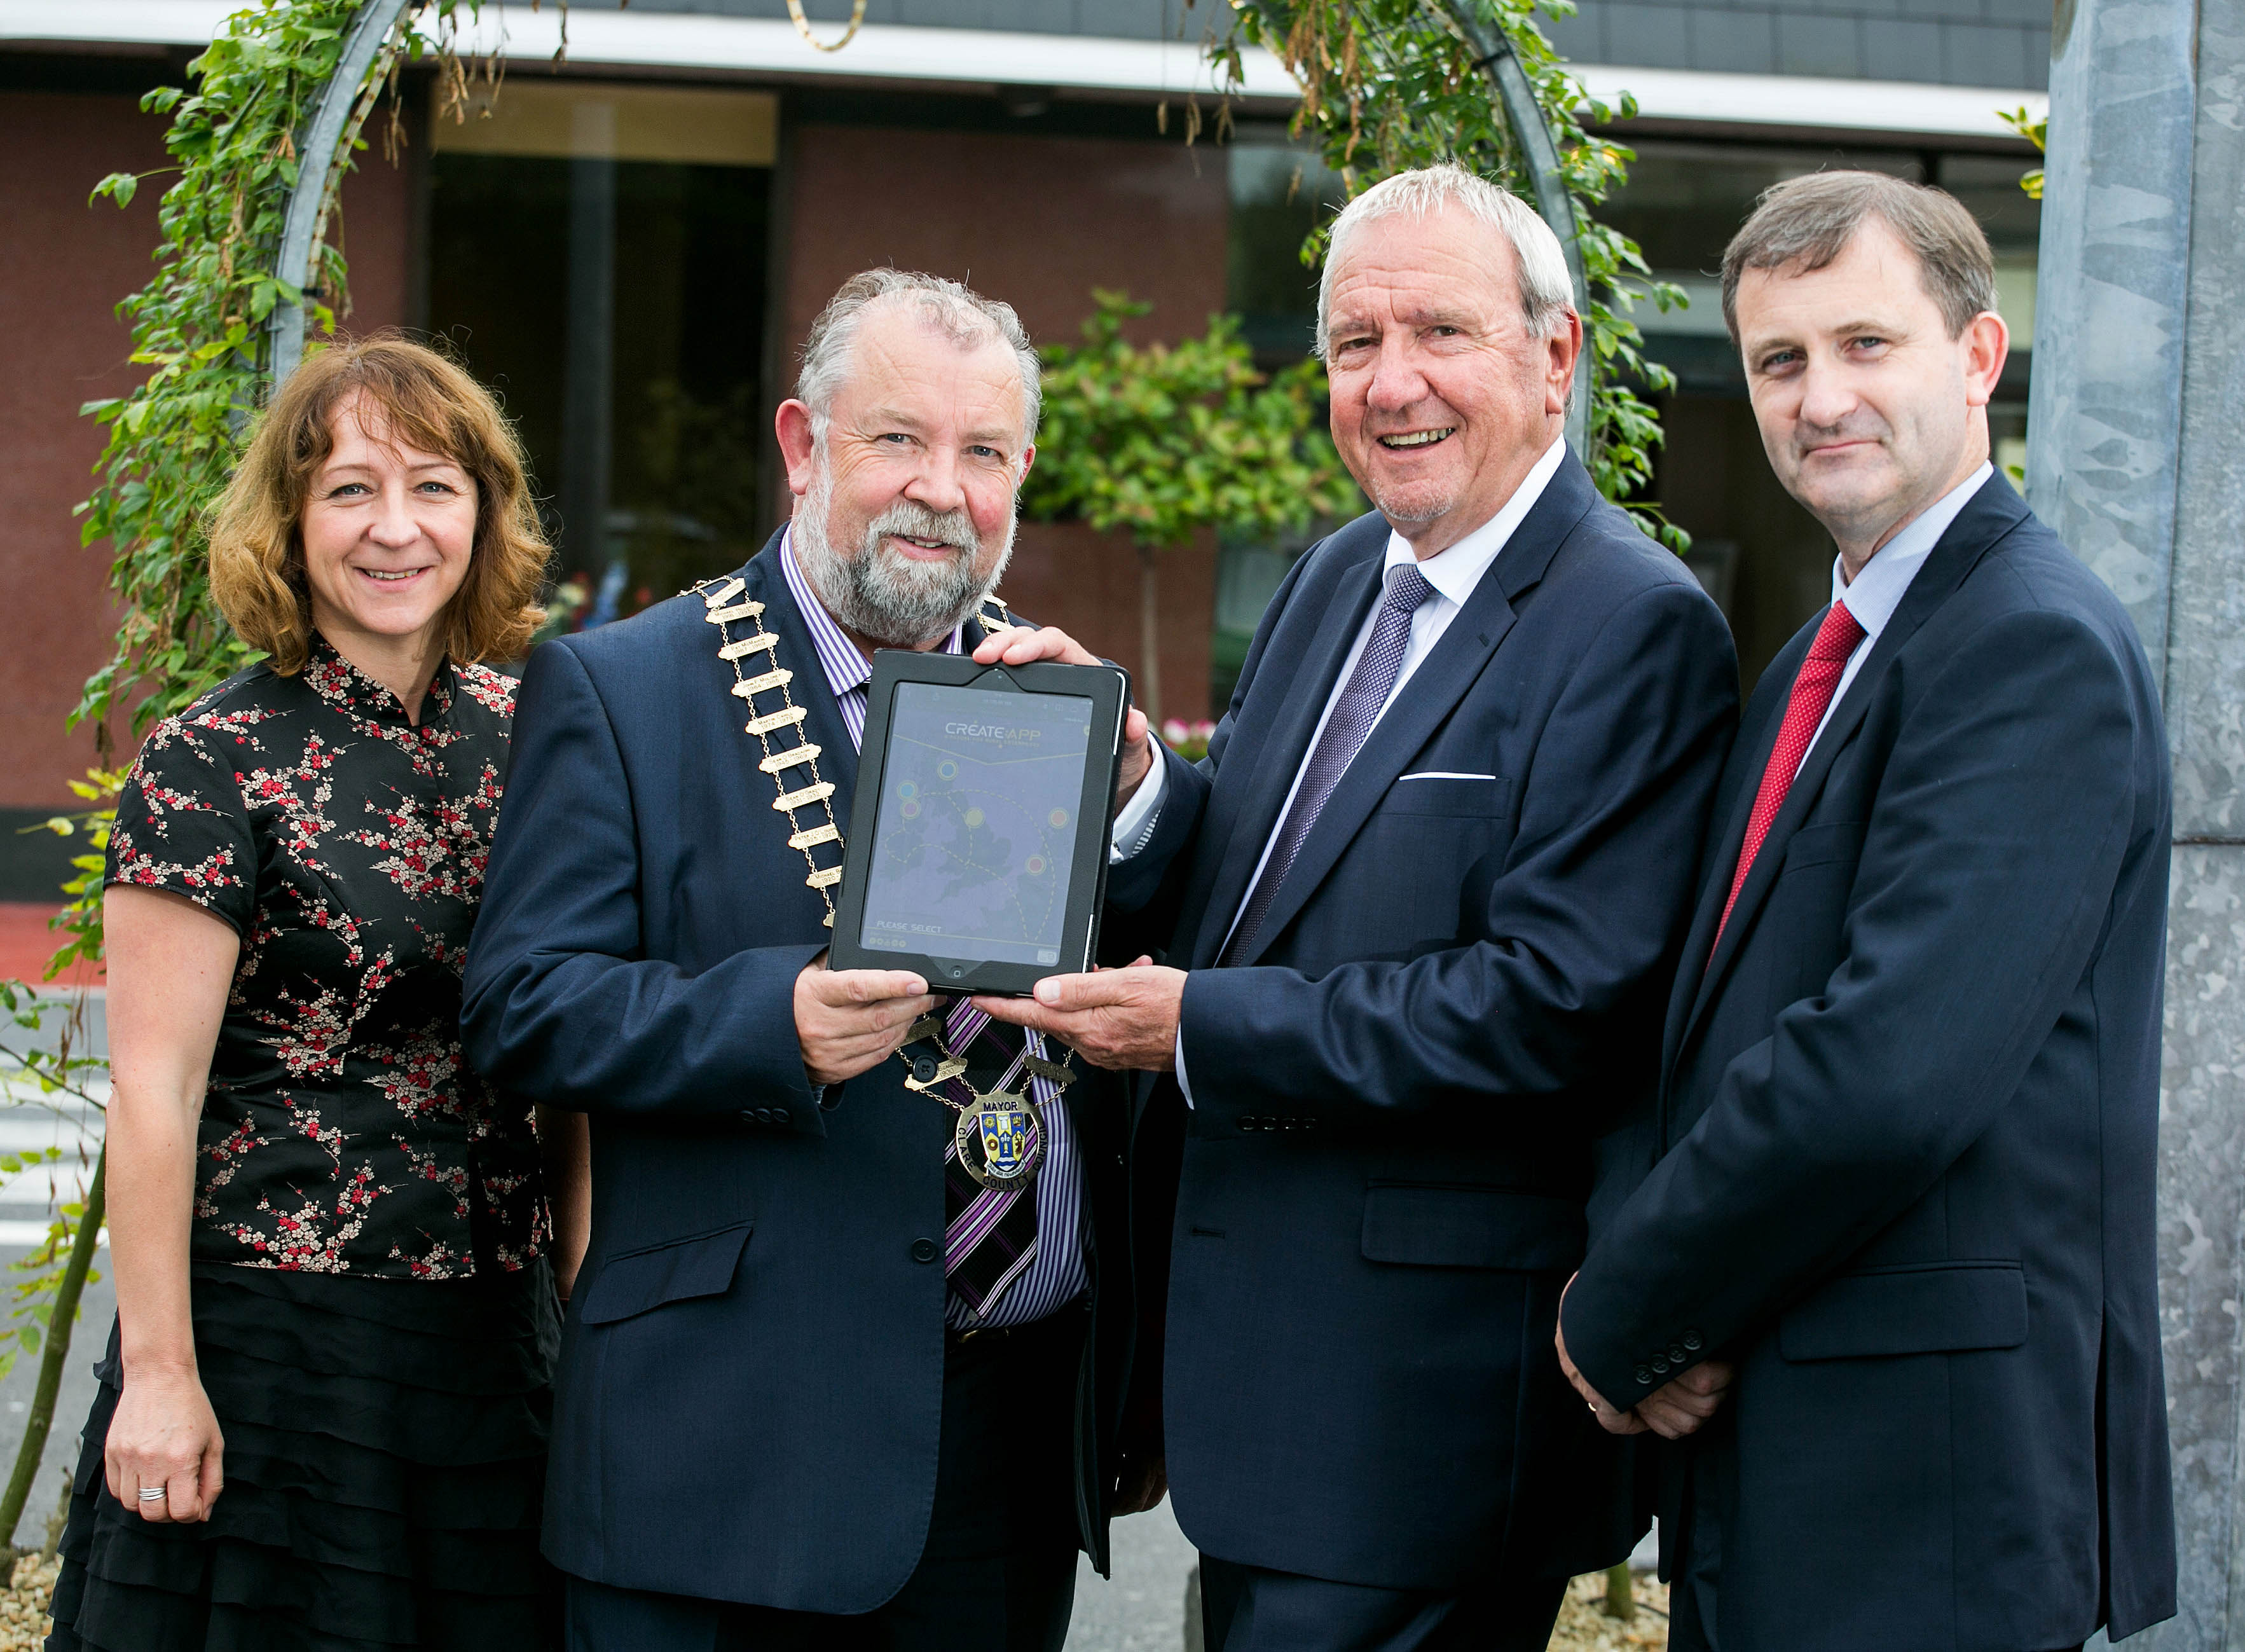 Pictured at the launch of the Create App in Ennis: L-R Natalia Silver, hereford Council,UK,     ,Cathaoirleach of Clare  Cllr. John Crowe ,Cllr. Graham Powell, Hereford, UK and Anthony Coleman, SERA Mid-West Office .Pic Arthur Ellis.